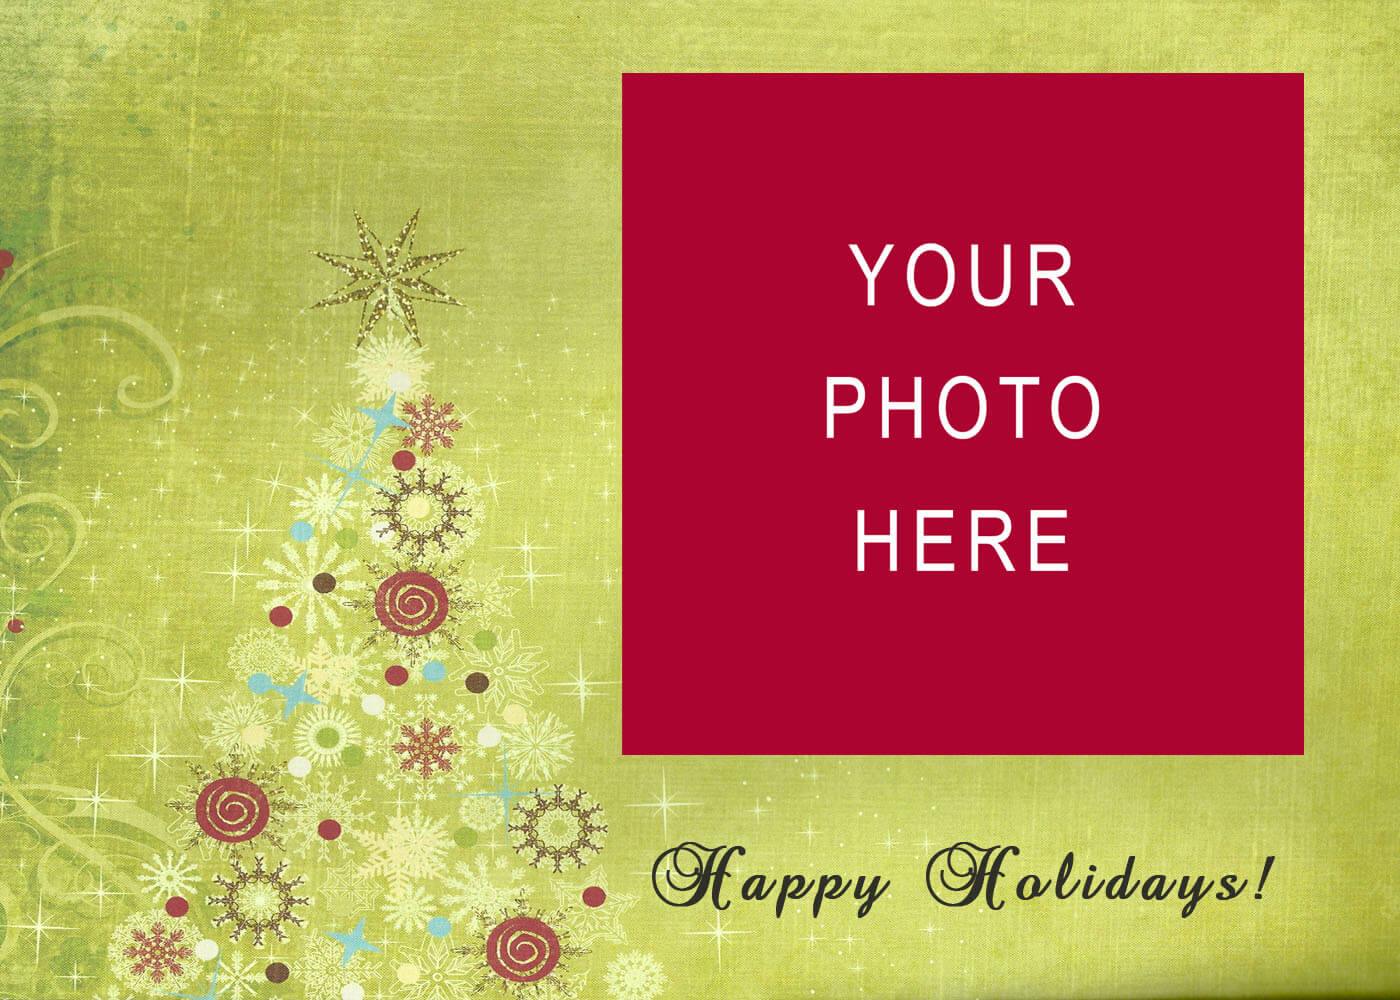 008 Christmas Card Templates Free Download Images In Photo Throughout Happy Holidays Card Template